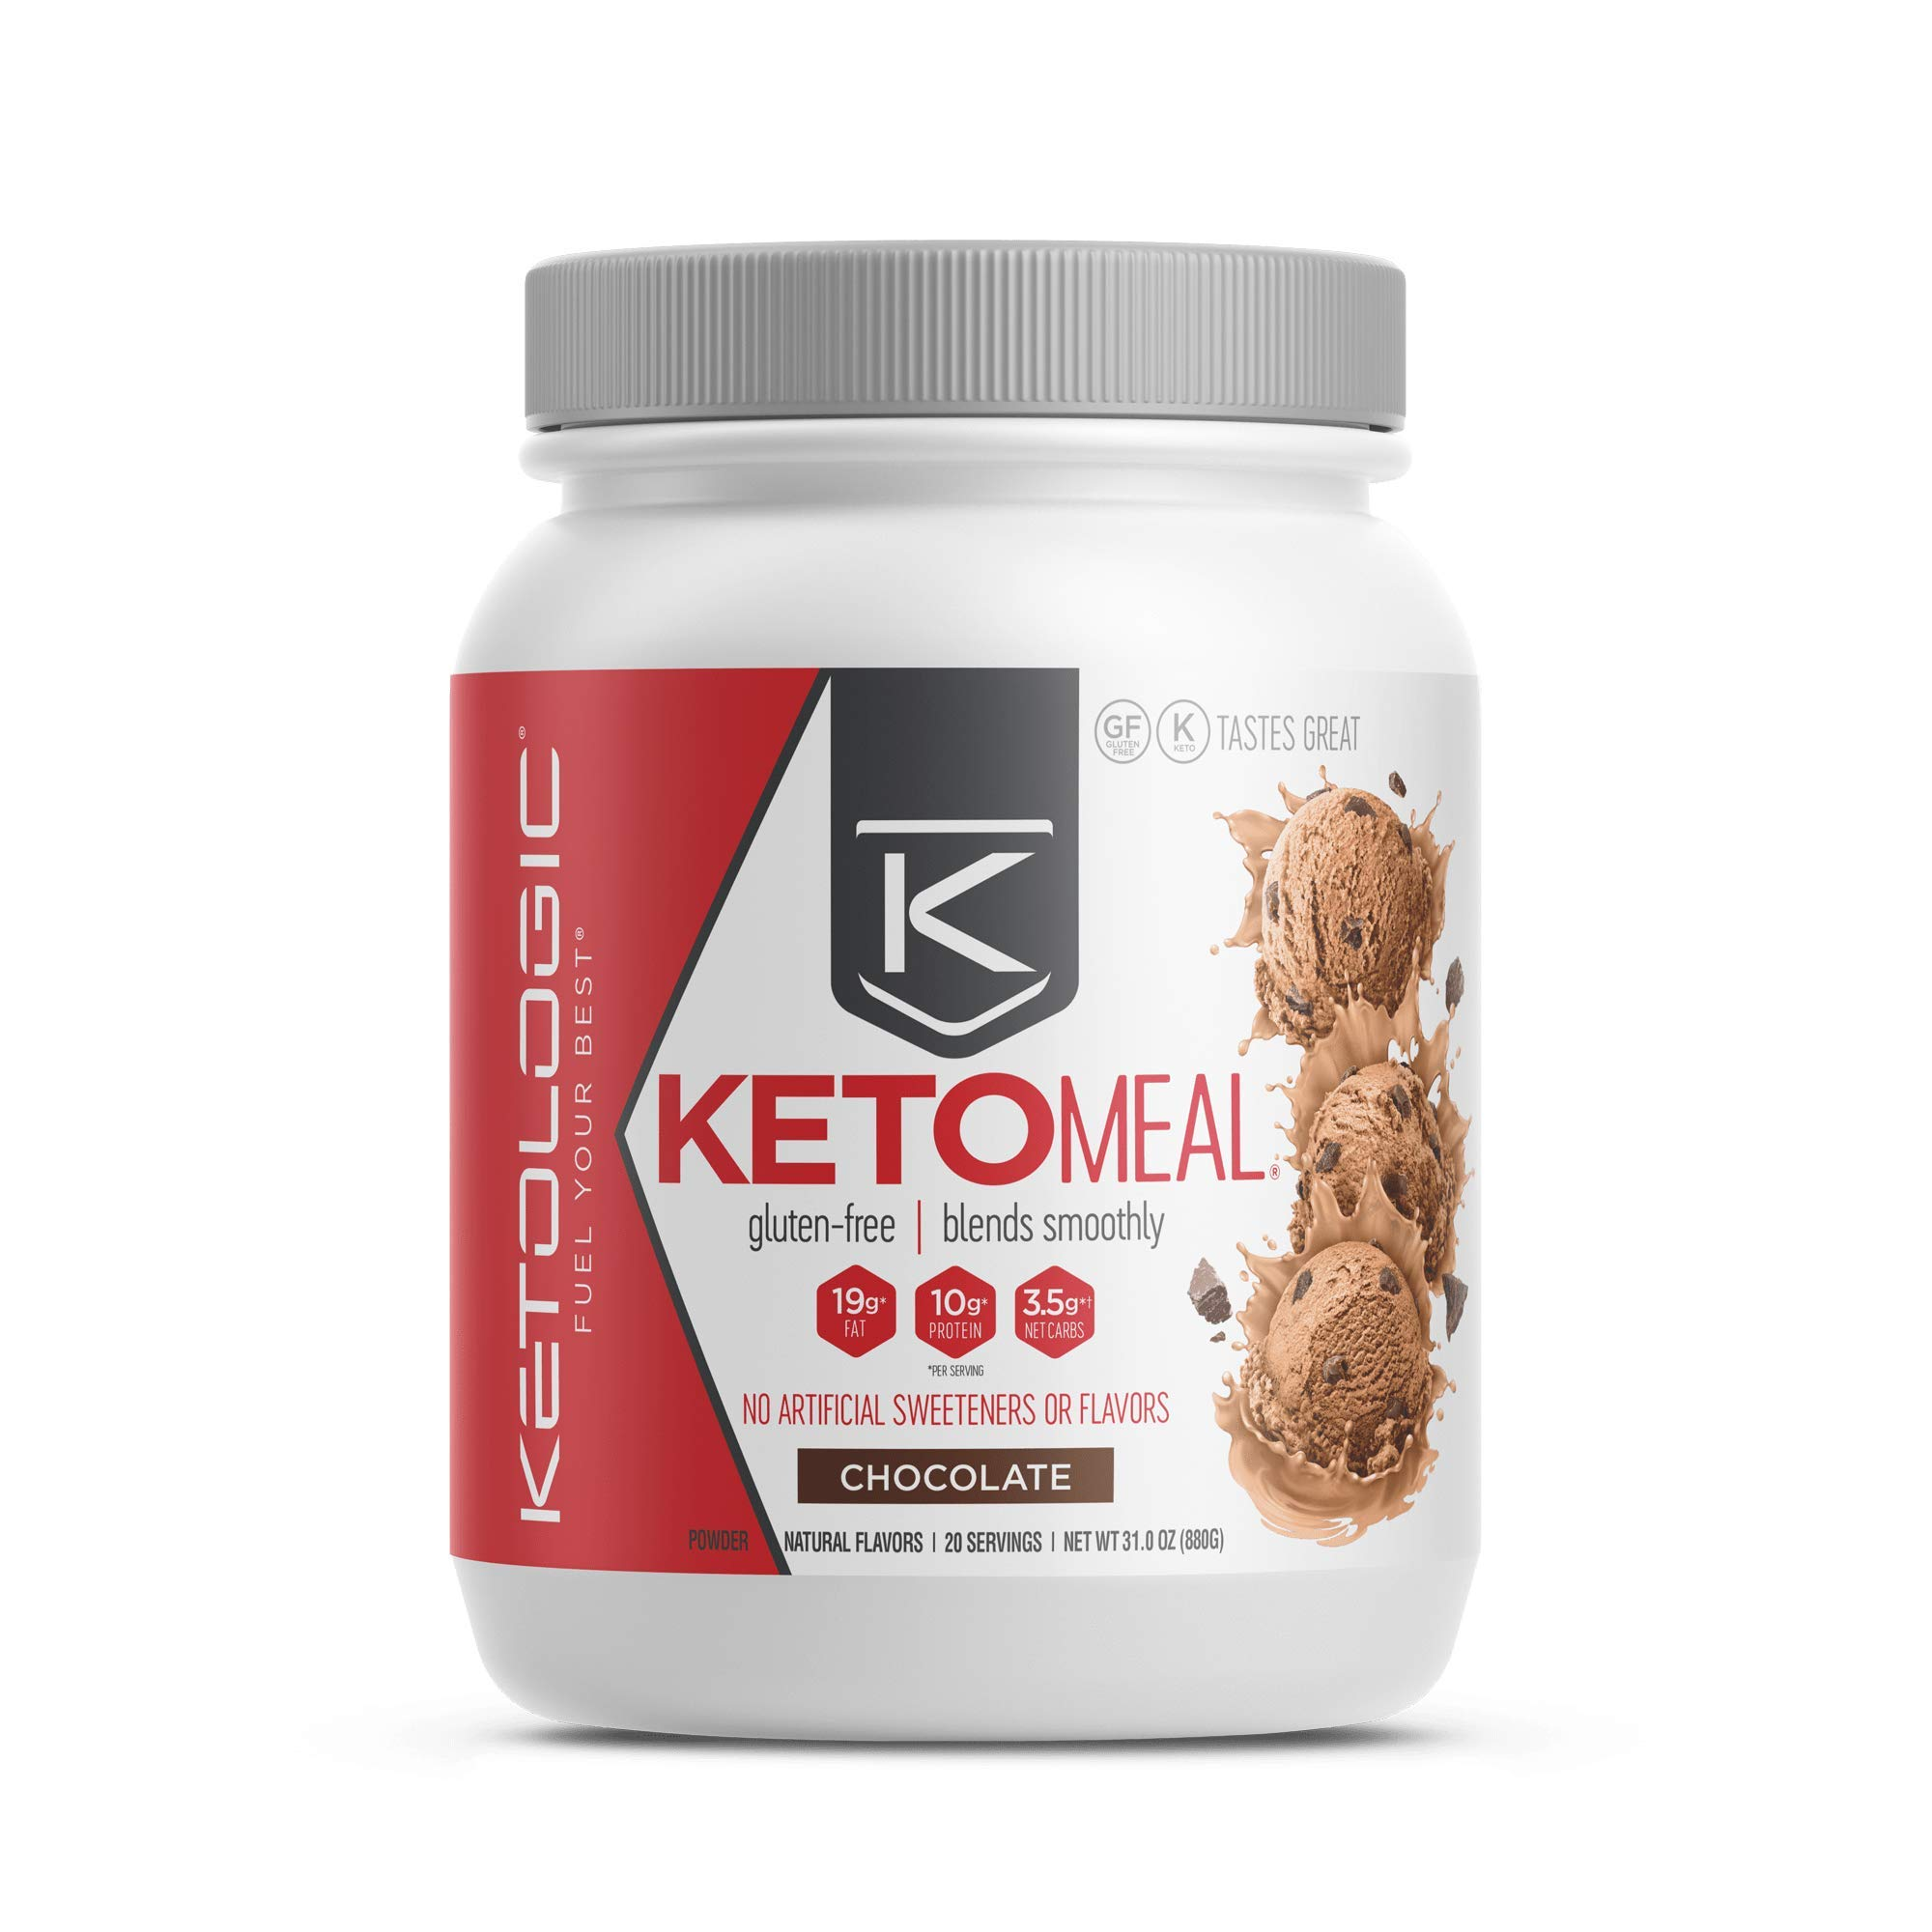 KetoLogic Keto Meal Replacement Shake with MCT, Chocolate | Low Carb, High Fat Keto Shake | Promotes Weight Loss & Suppresses Appetite | 20 Servings by Ketologic